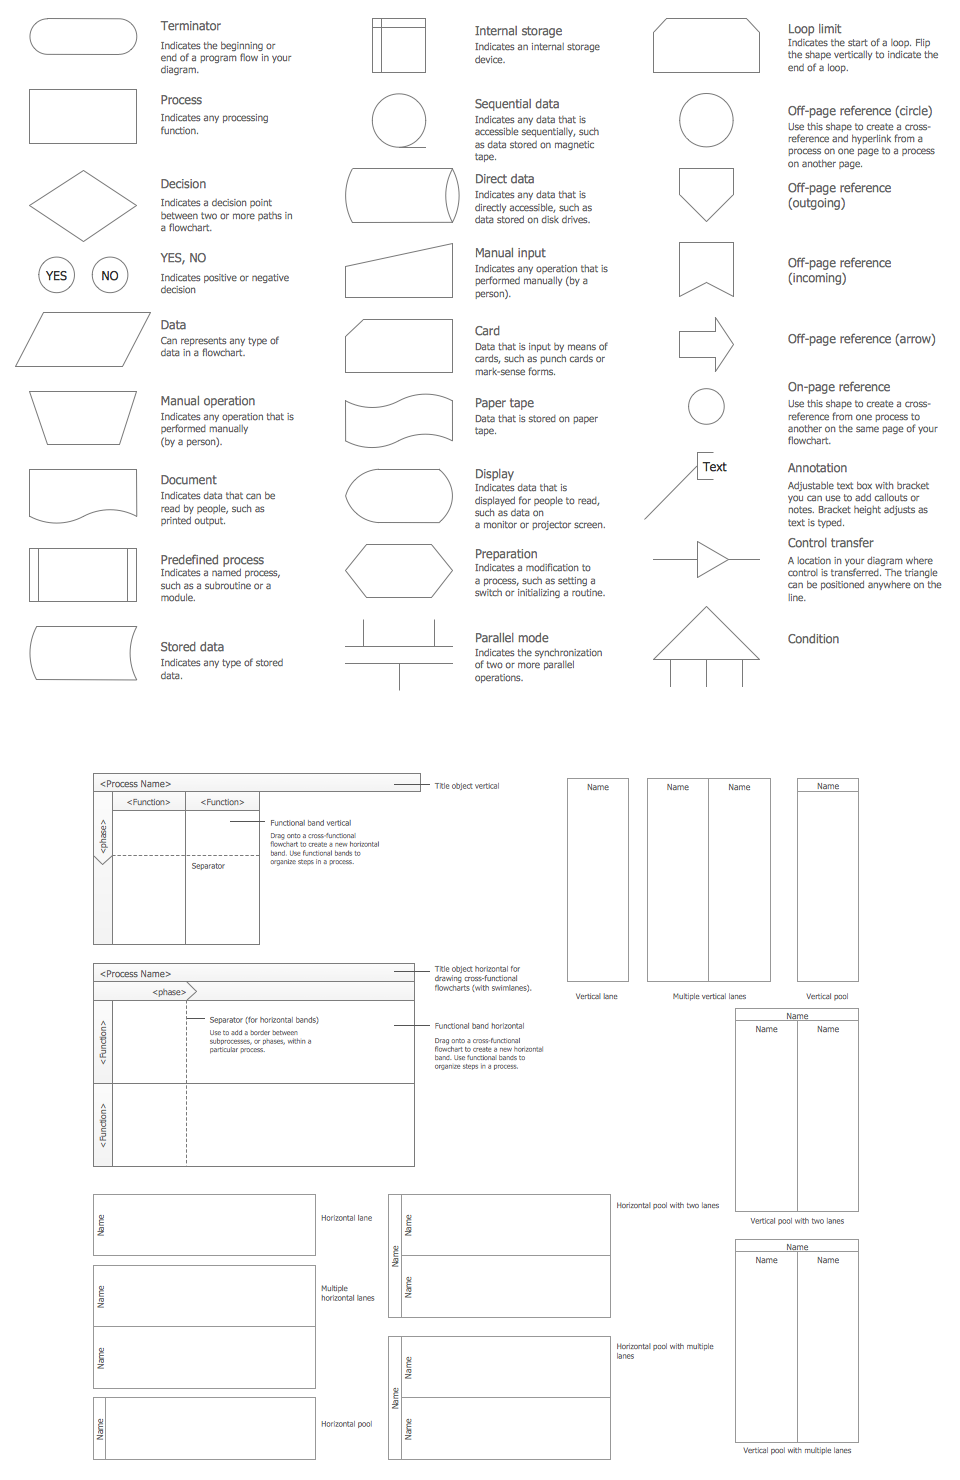 How to create a flow chart in conceptdraw free trial for mac flow chart design symbols geenschuldenfo Choice Image